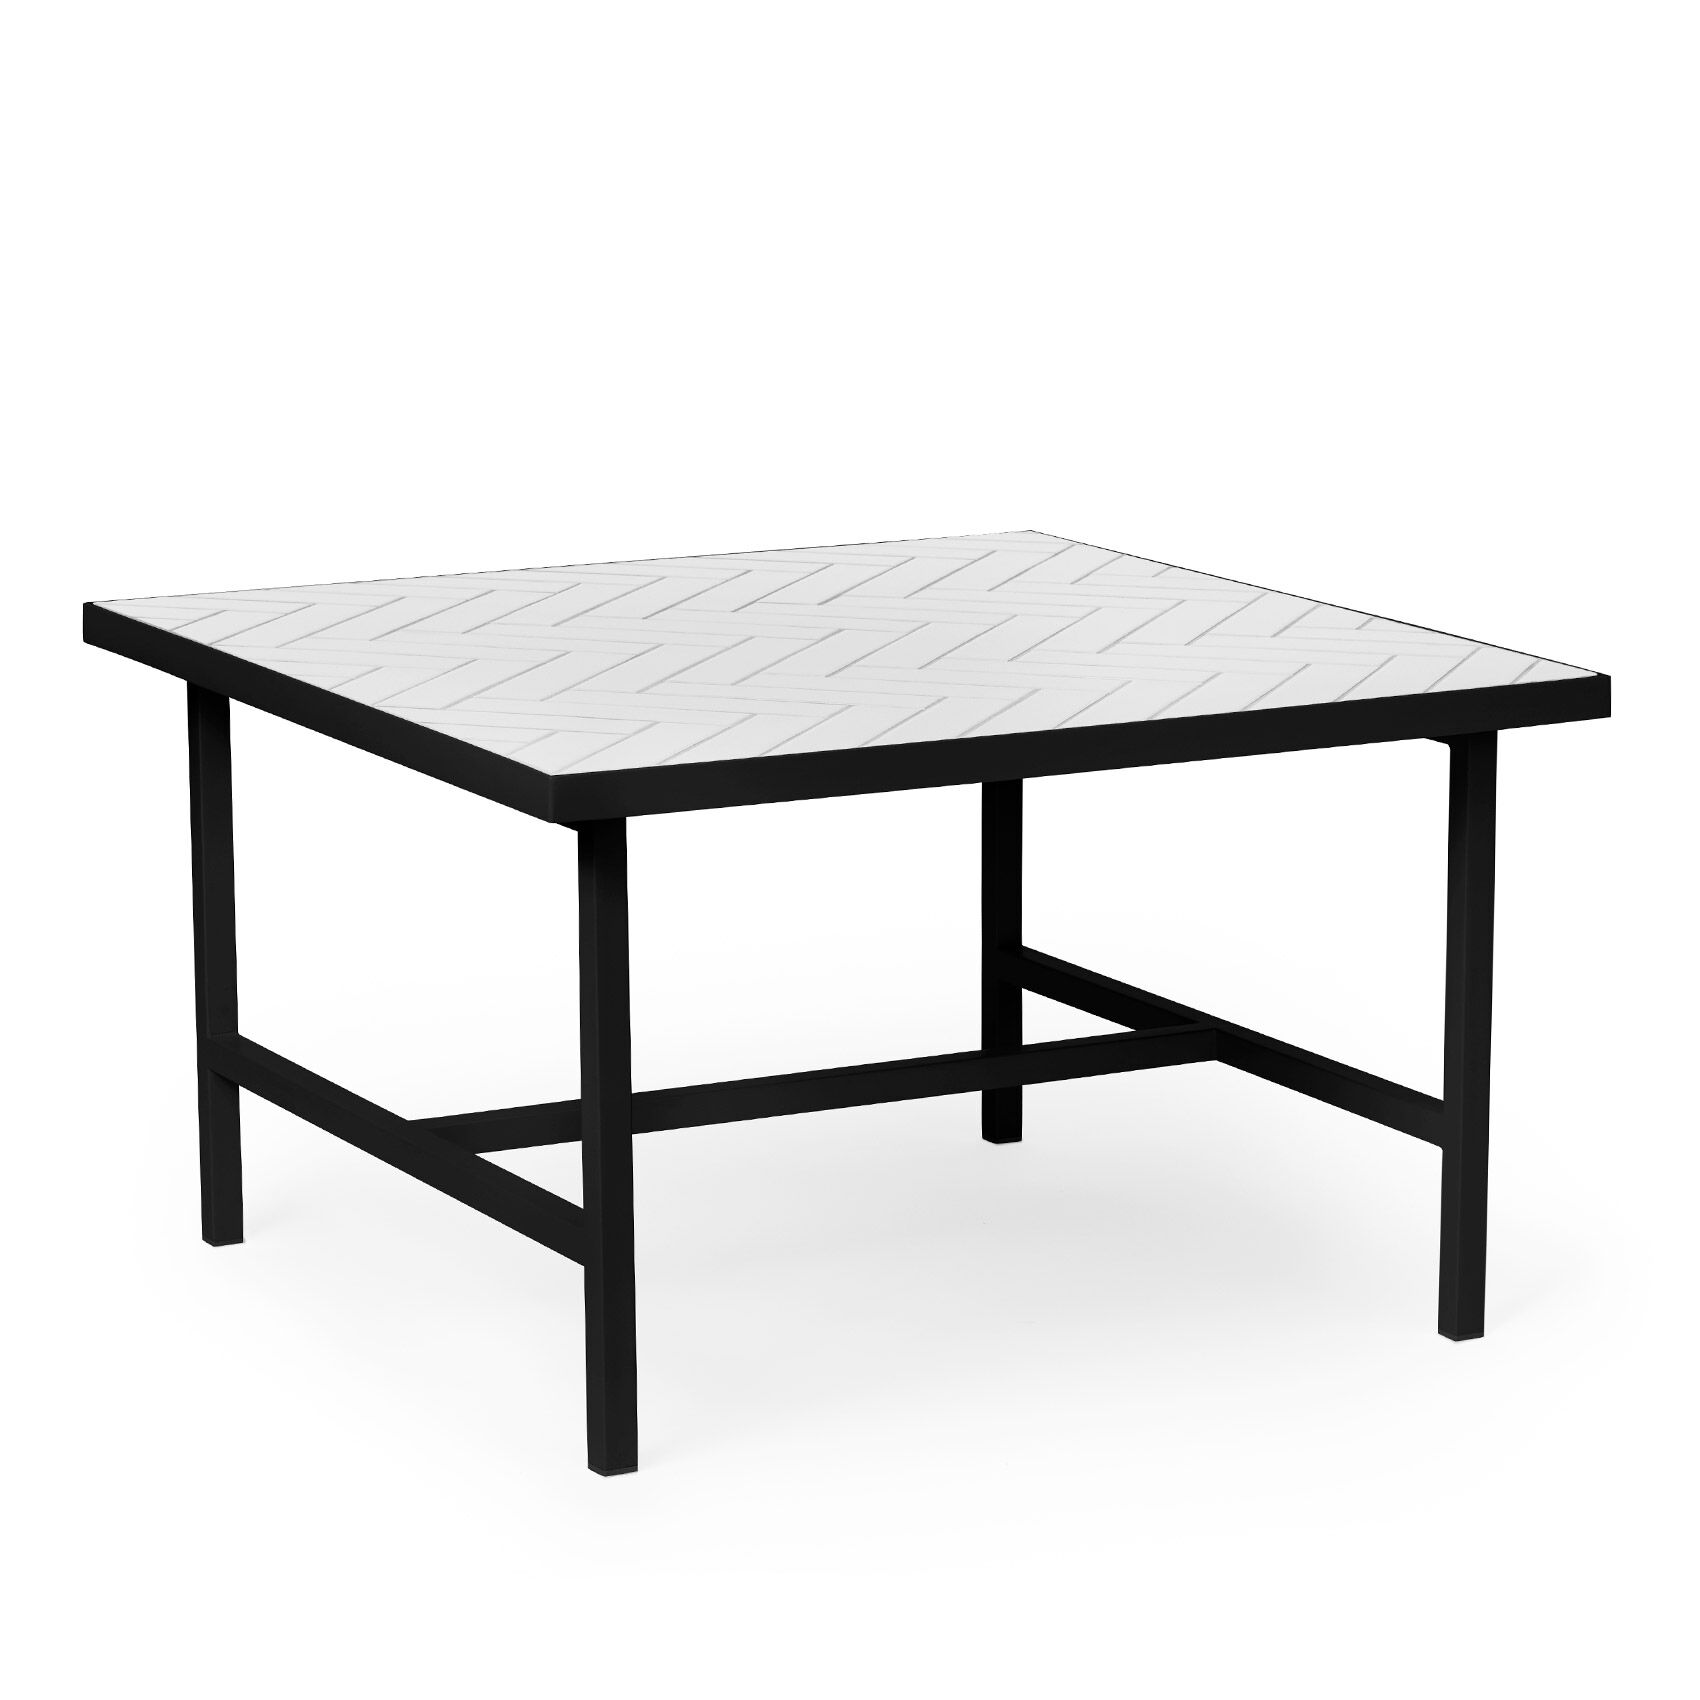 - Herringbone Tile Coffee Table Warm Nordic